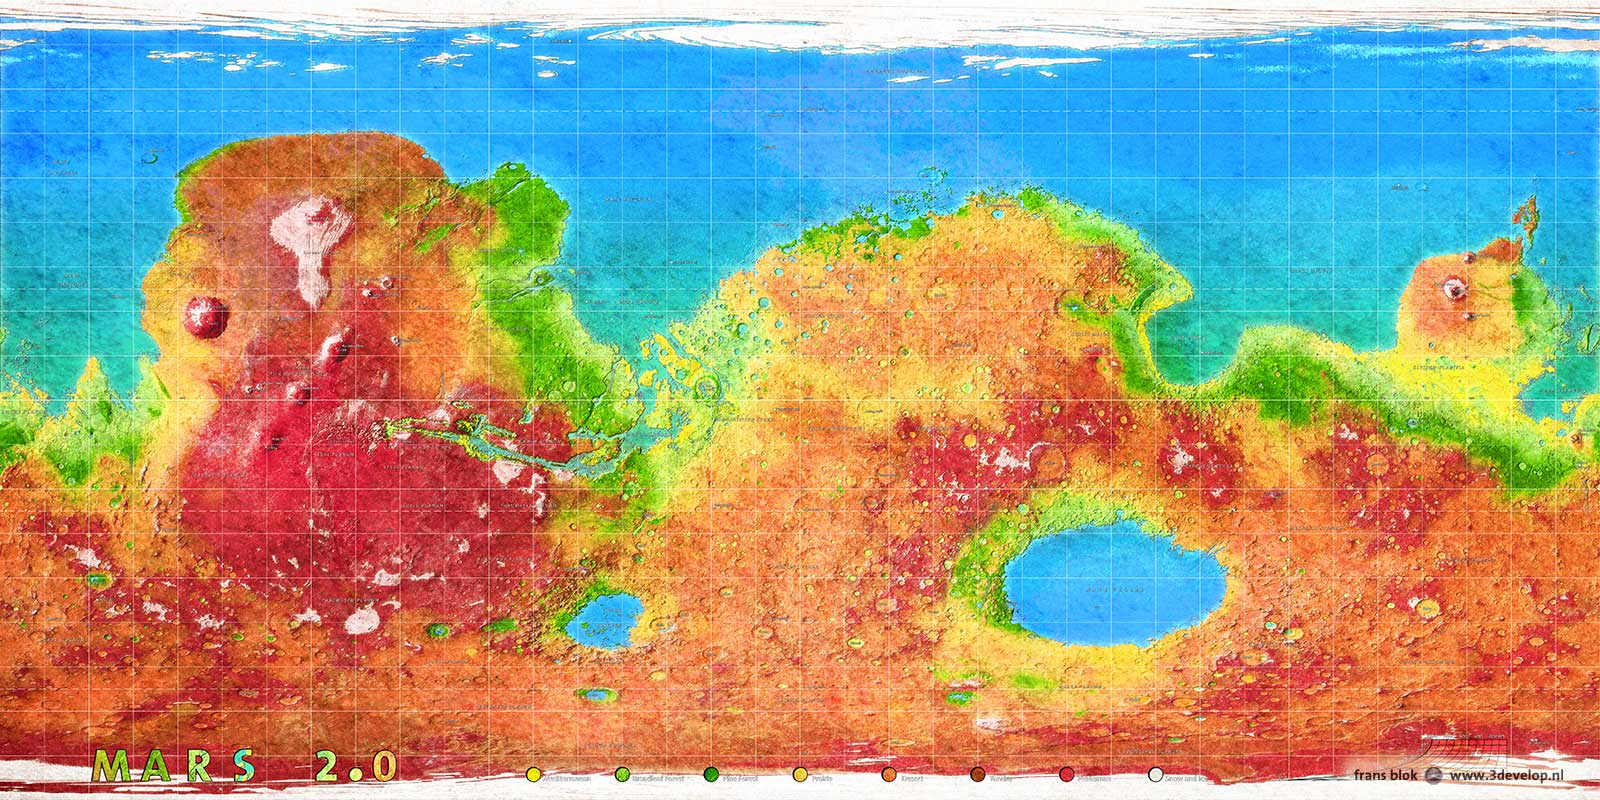 World map of terraformed Mars